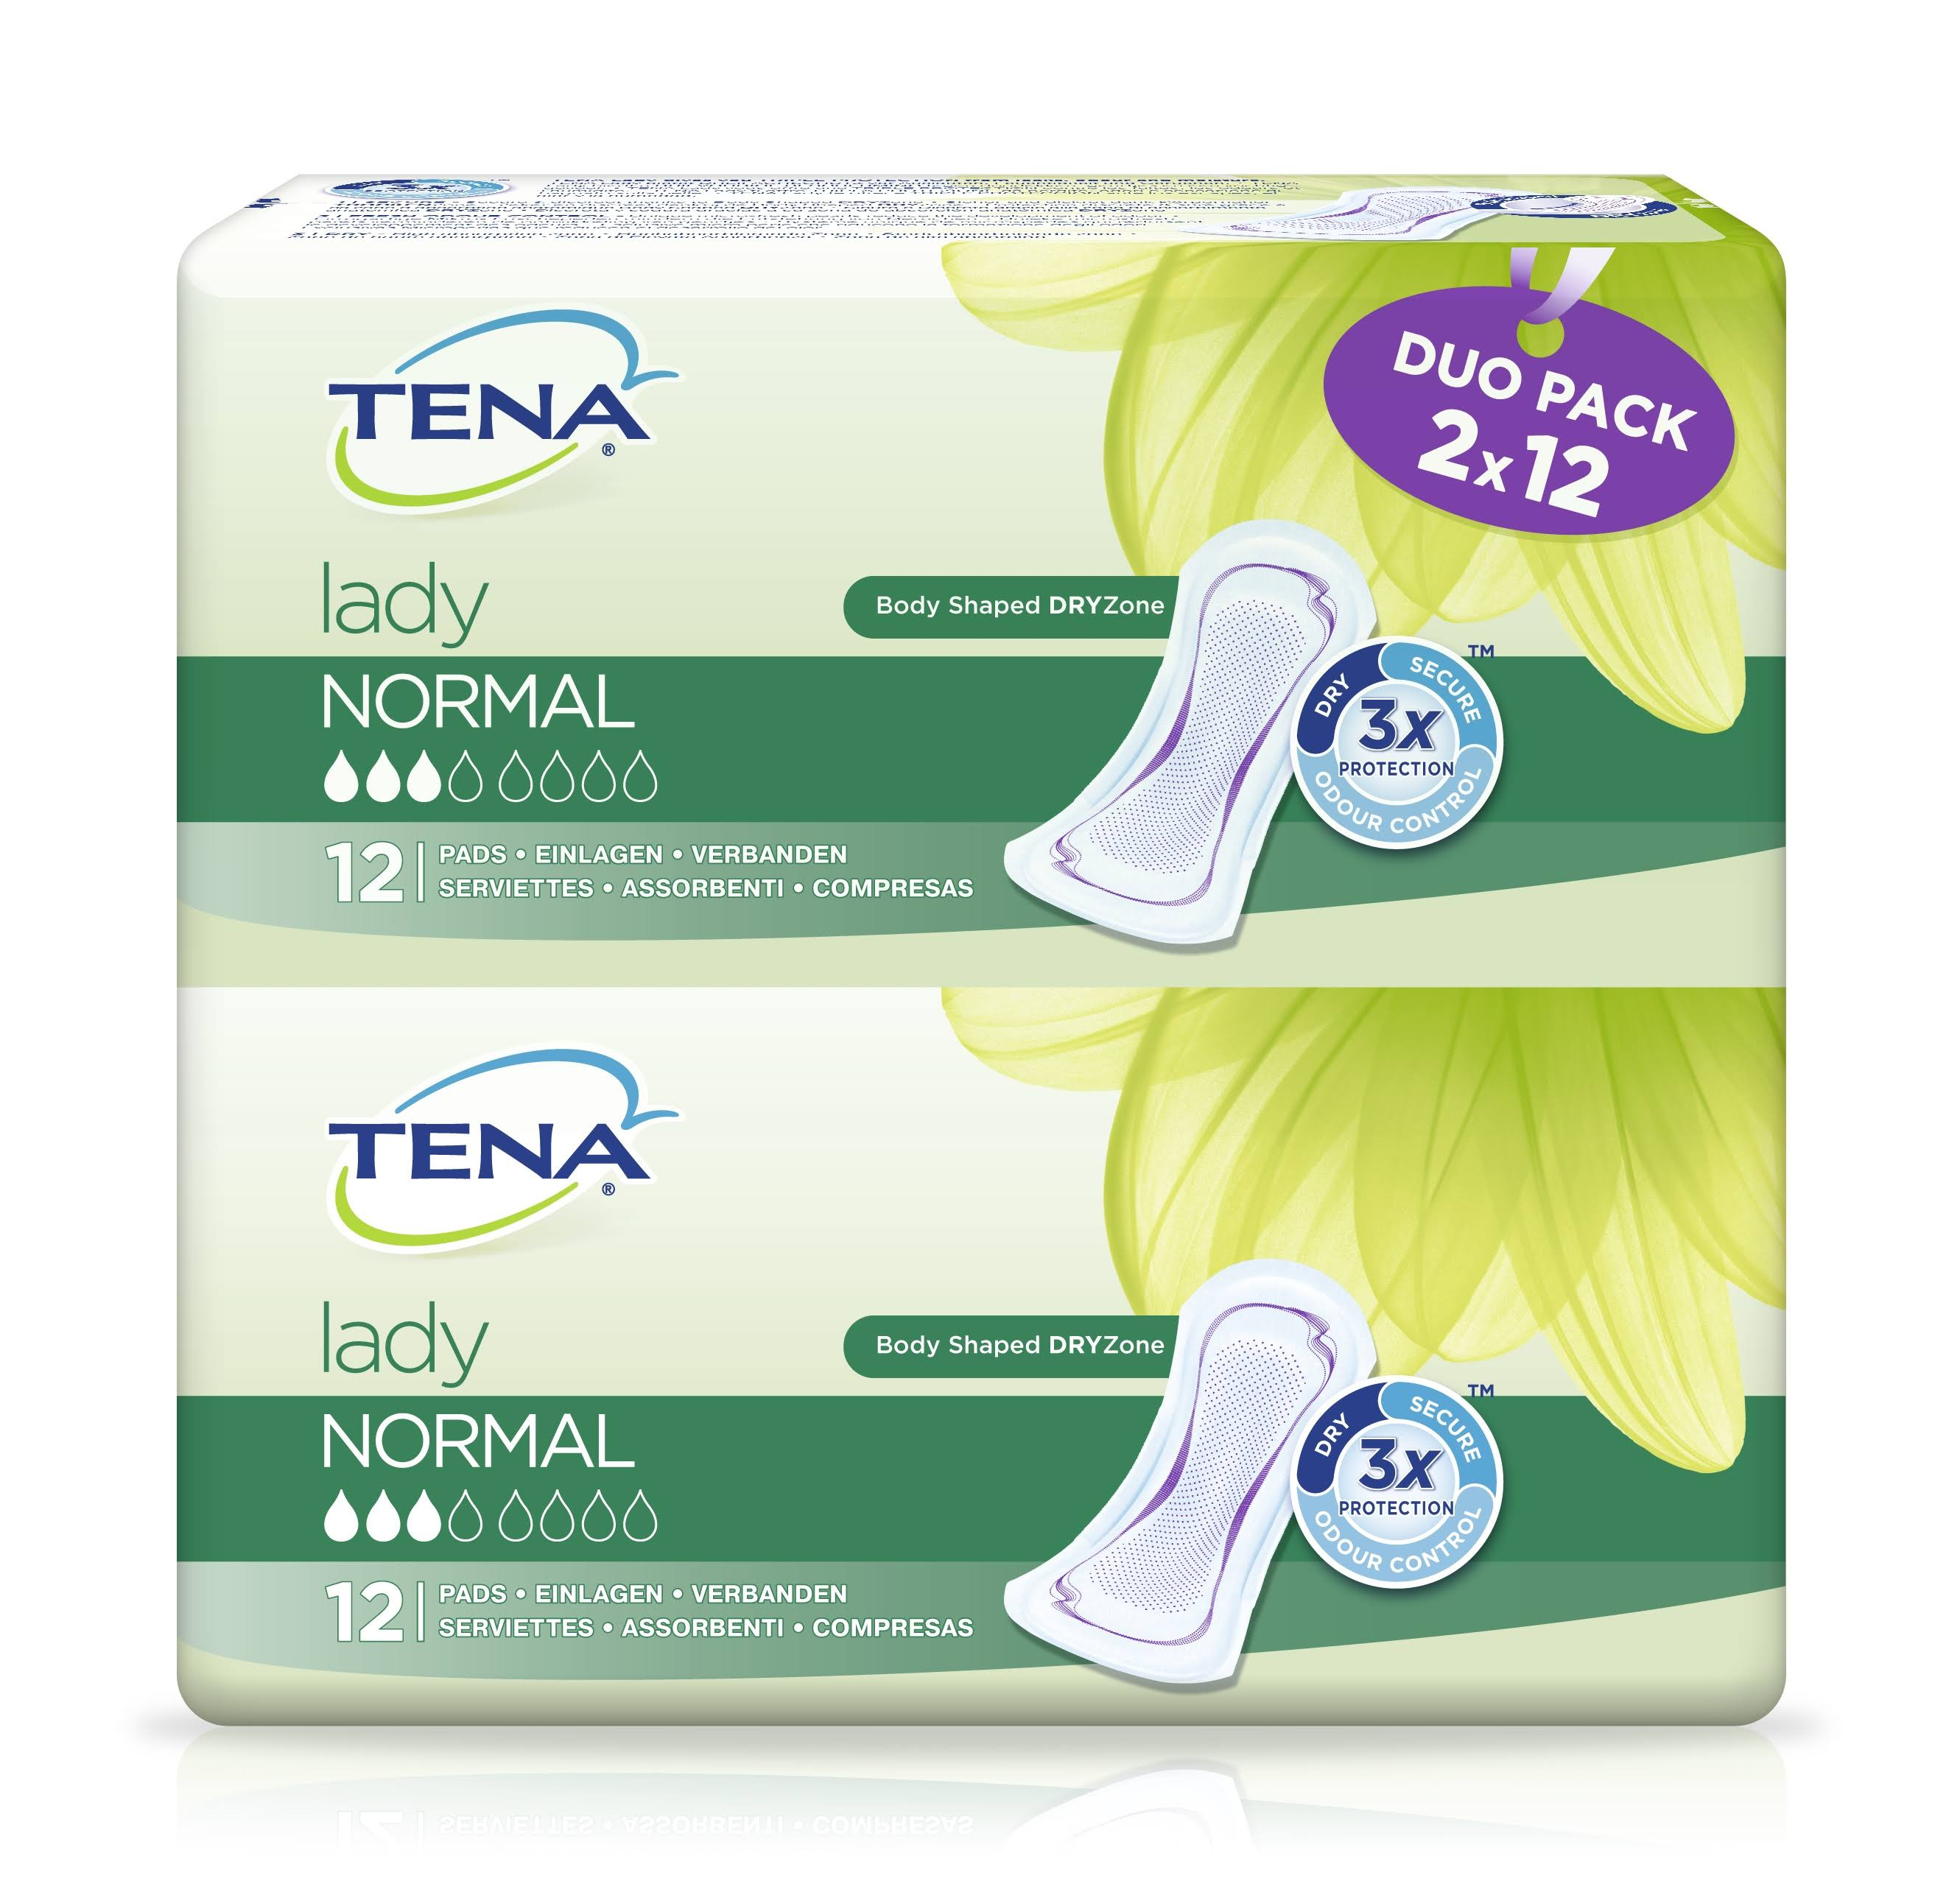 Tena Lady Normal Towels - Duo Pack, 2 x 12 Pads